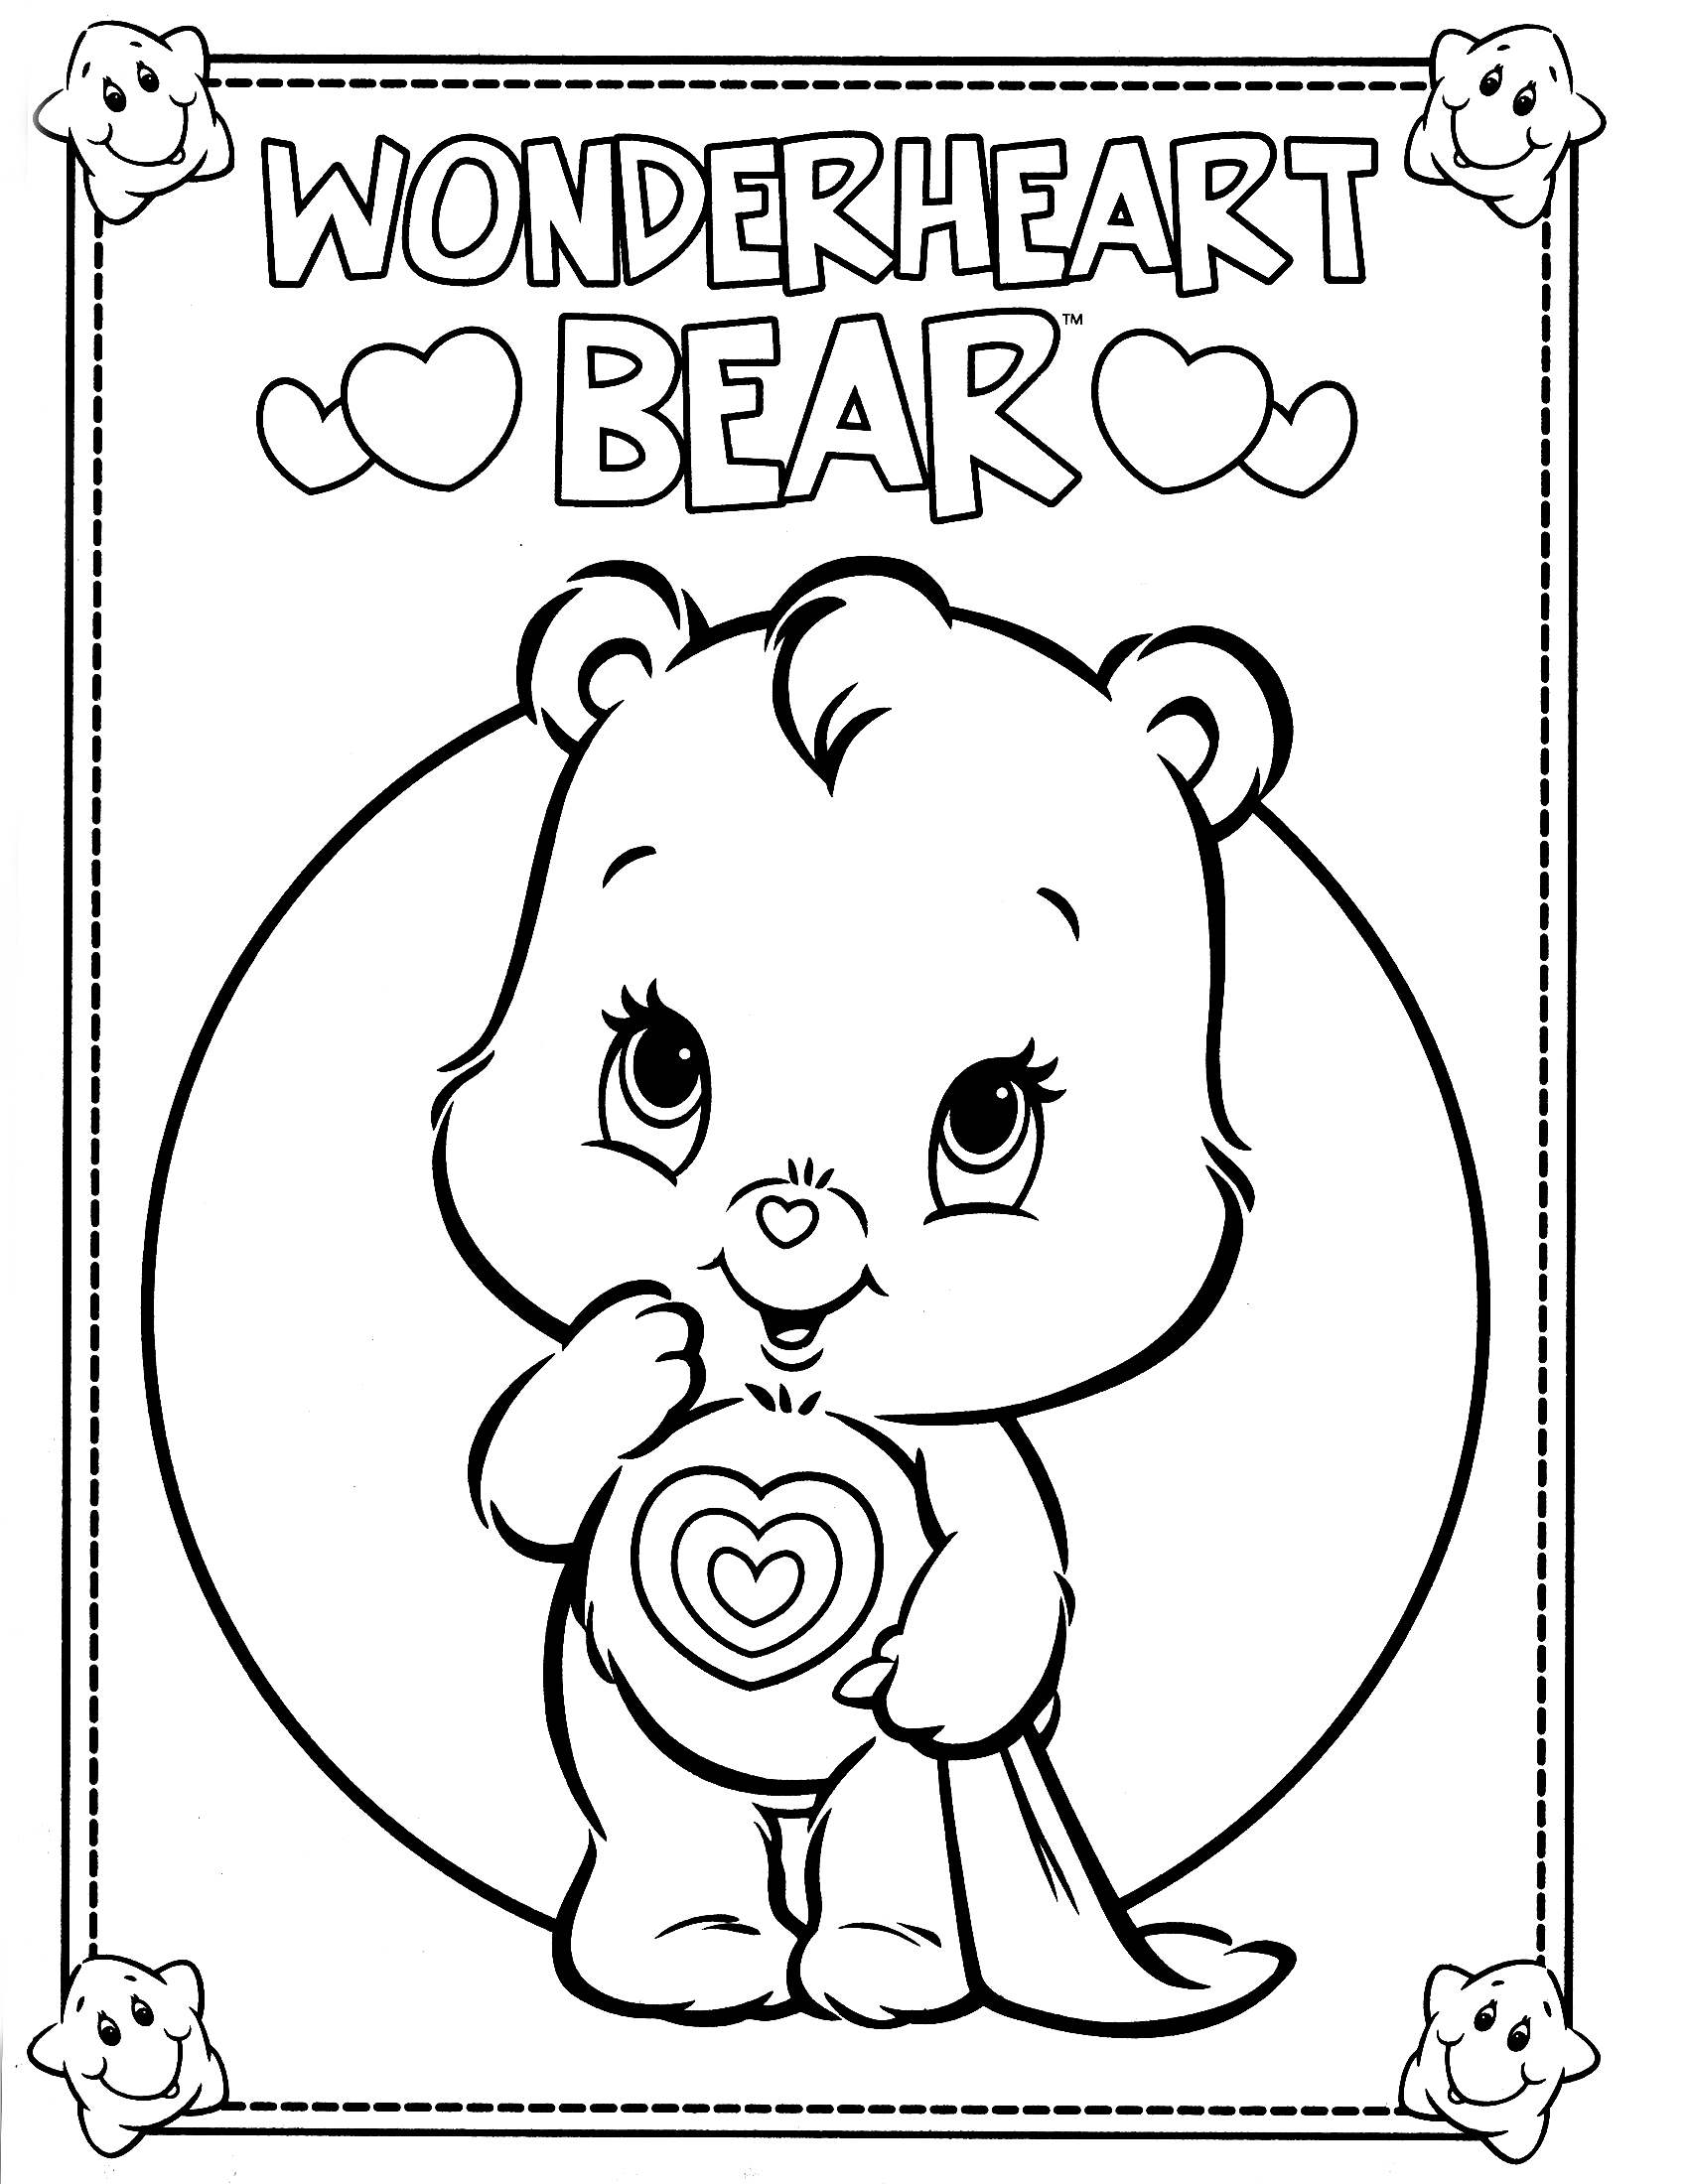 coloring pages of bears to print free printable care bear coloring pages for kids to bears print pages of coloring